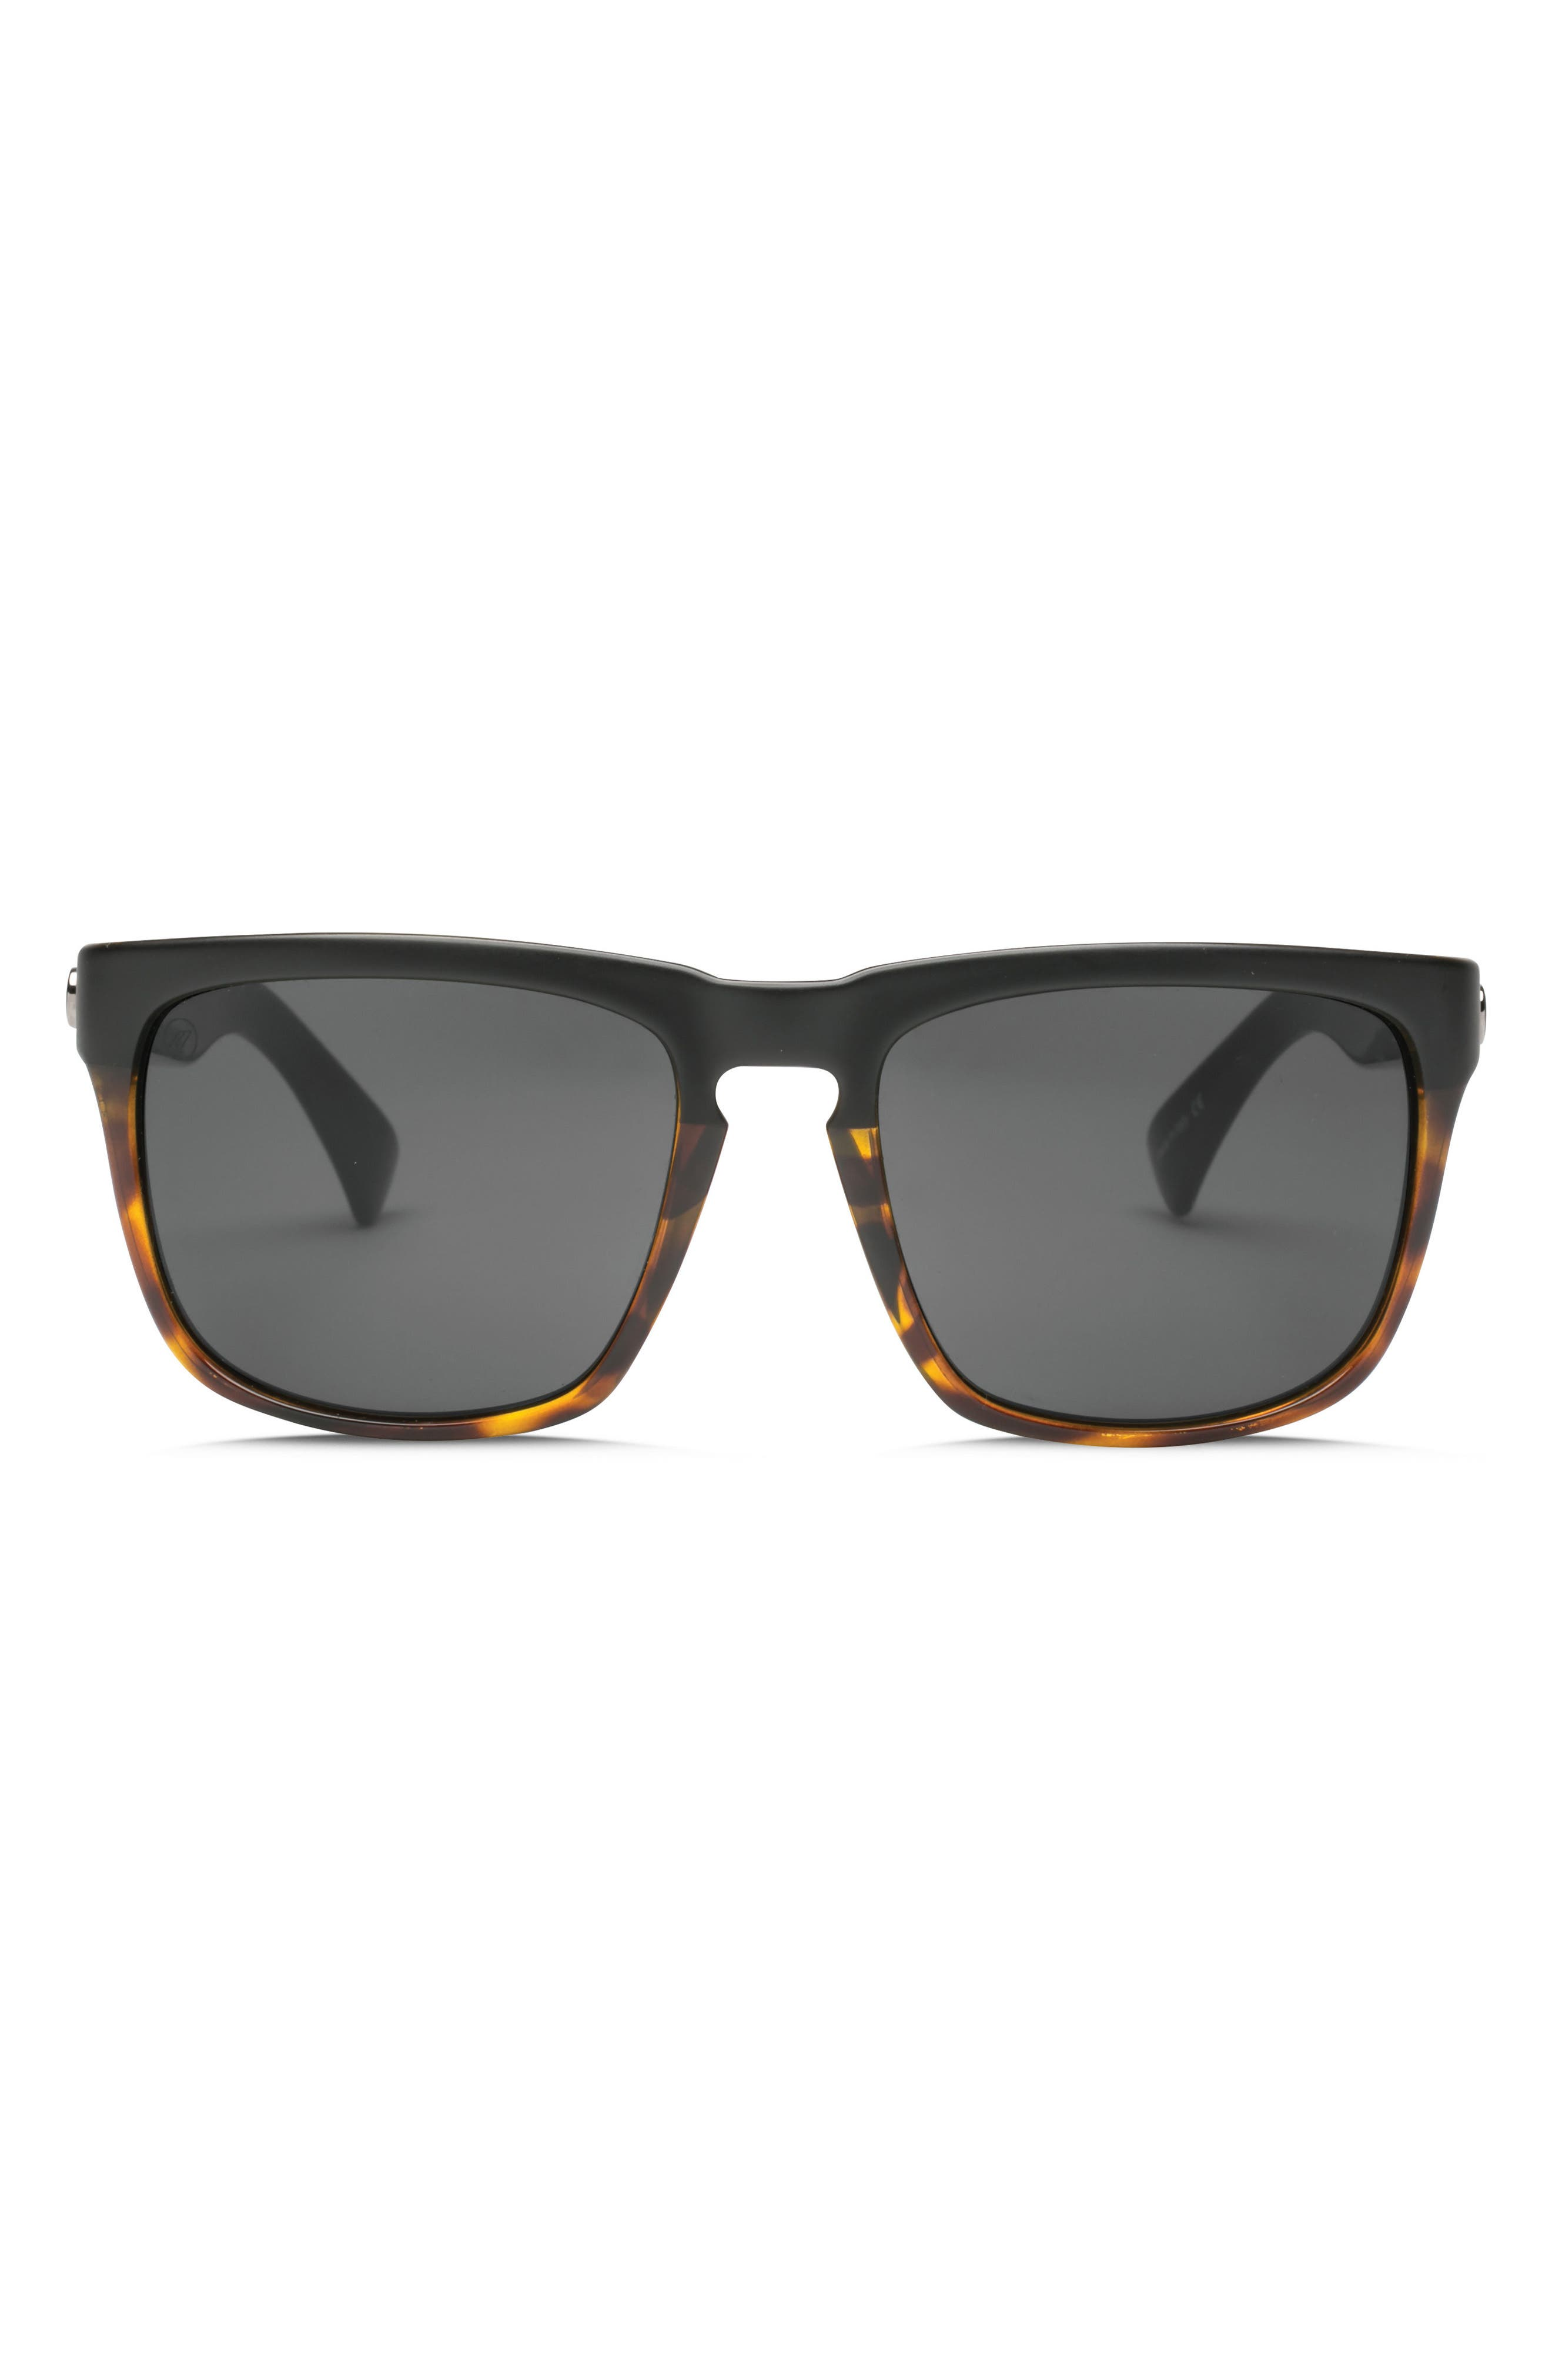 Knoxville XL 61mm Sunglasses,                         Main,                         color,